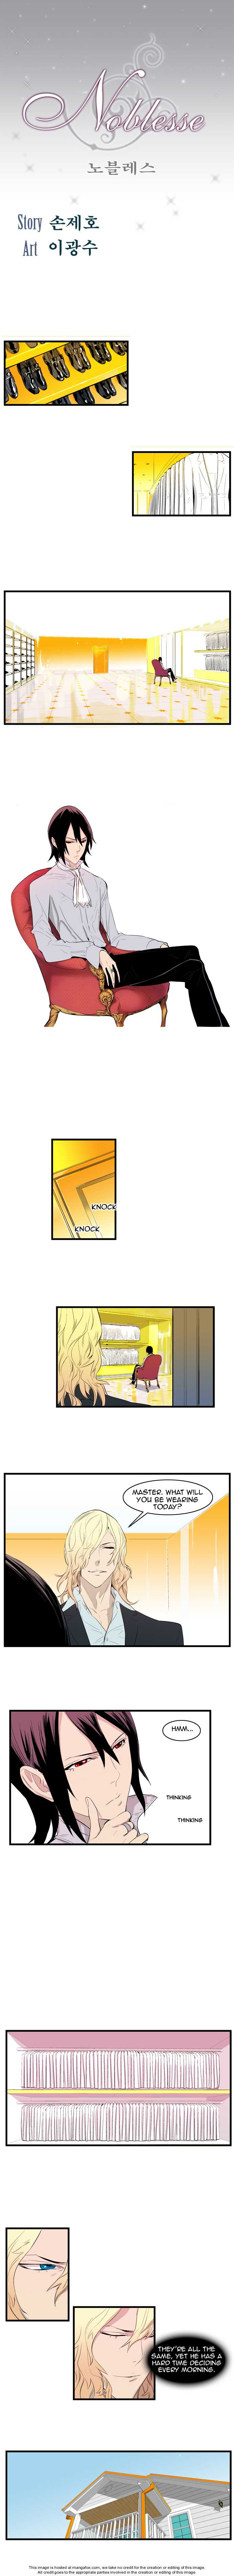 Noblesse 93 Page 1